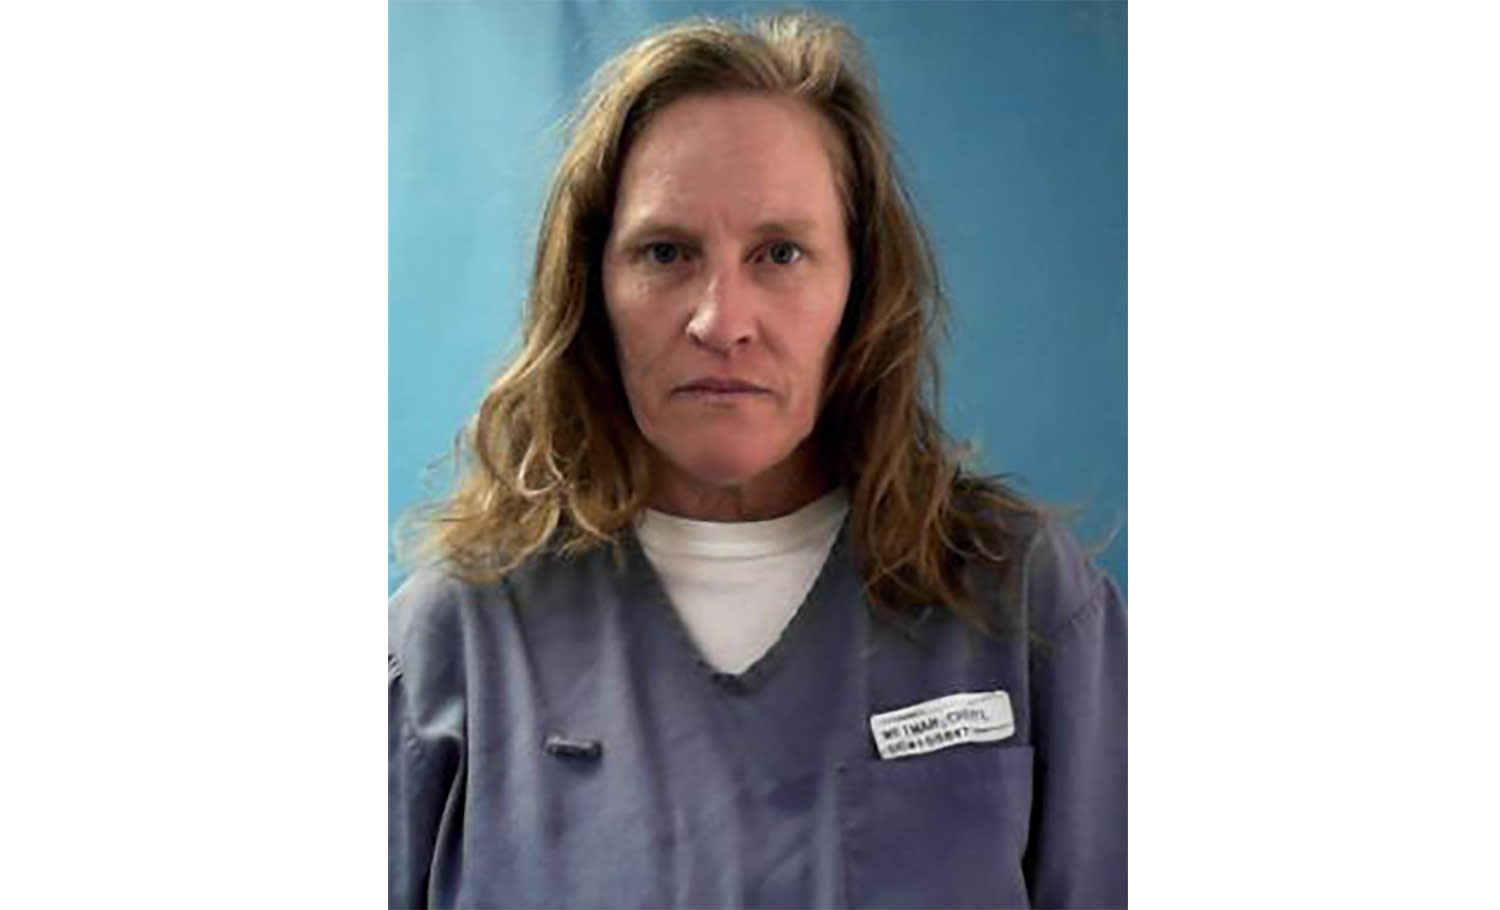 Florida inmate says beating by guards left her paralyzed